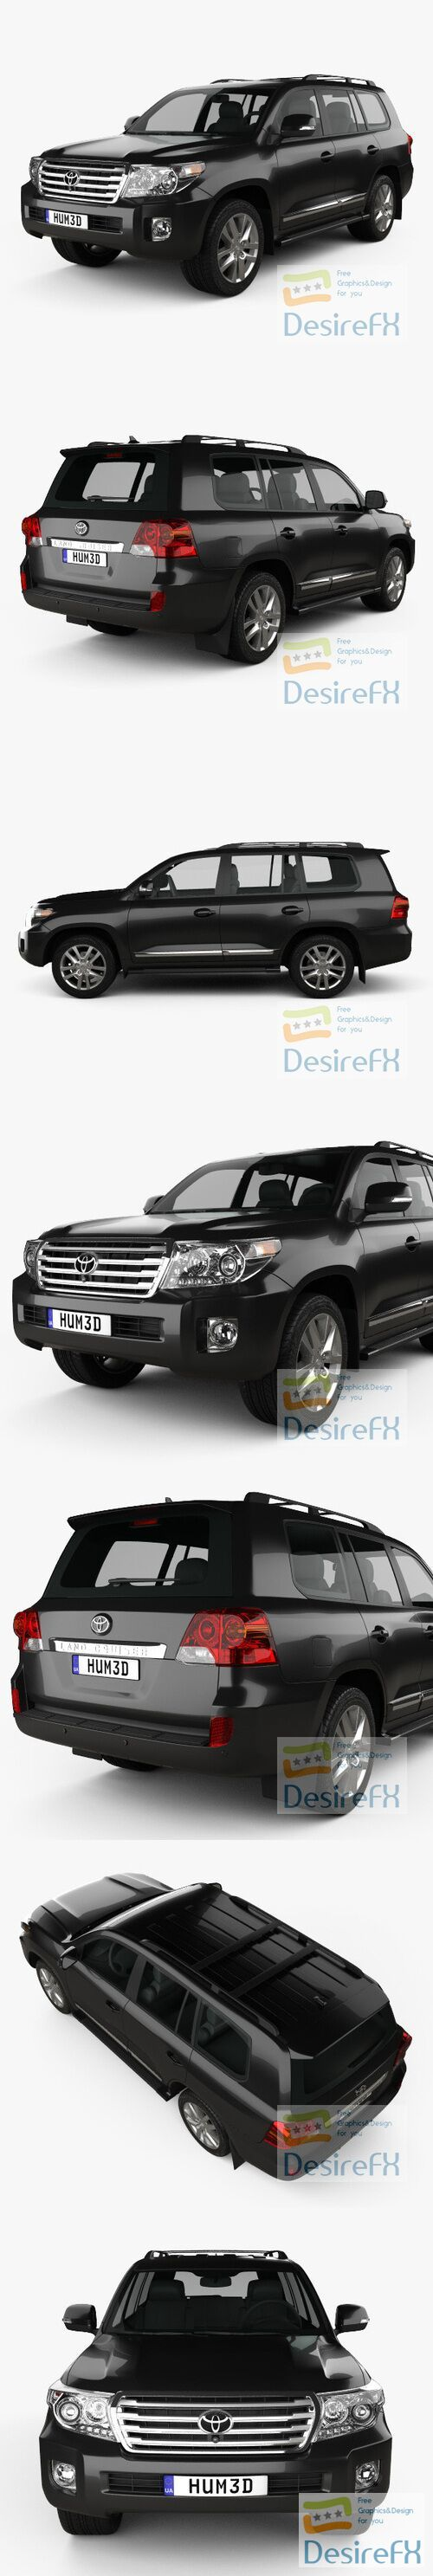 Toyota Land Cruiser J200 2013 3D Model